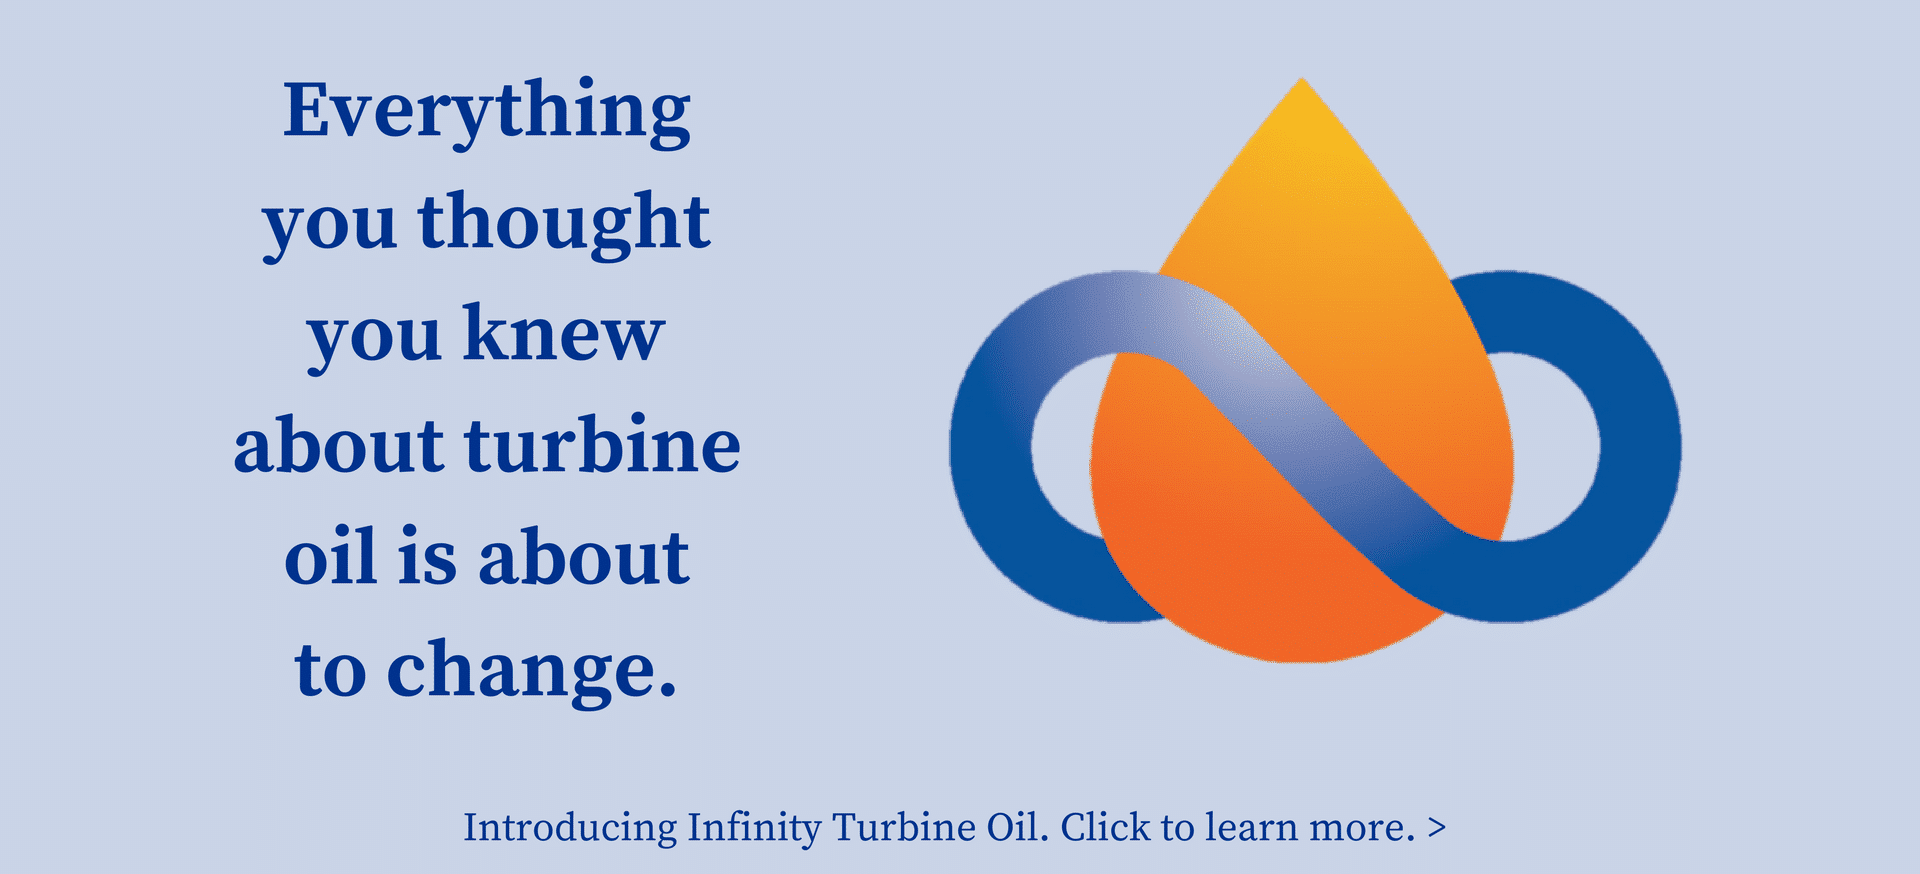 Find out about Infinity Turbine Oil